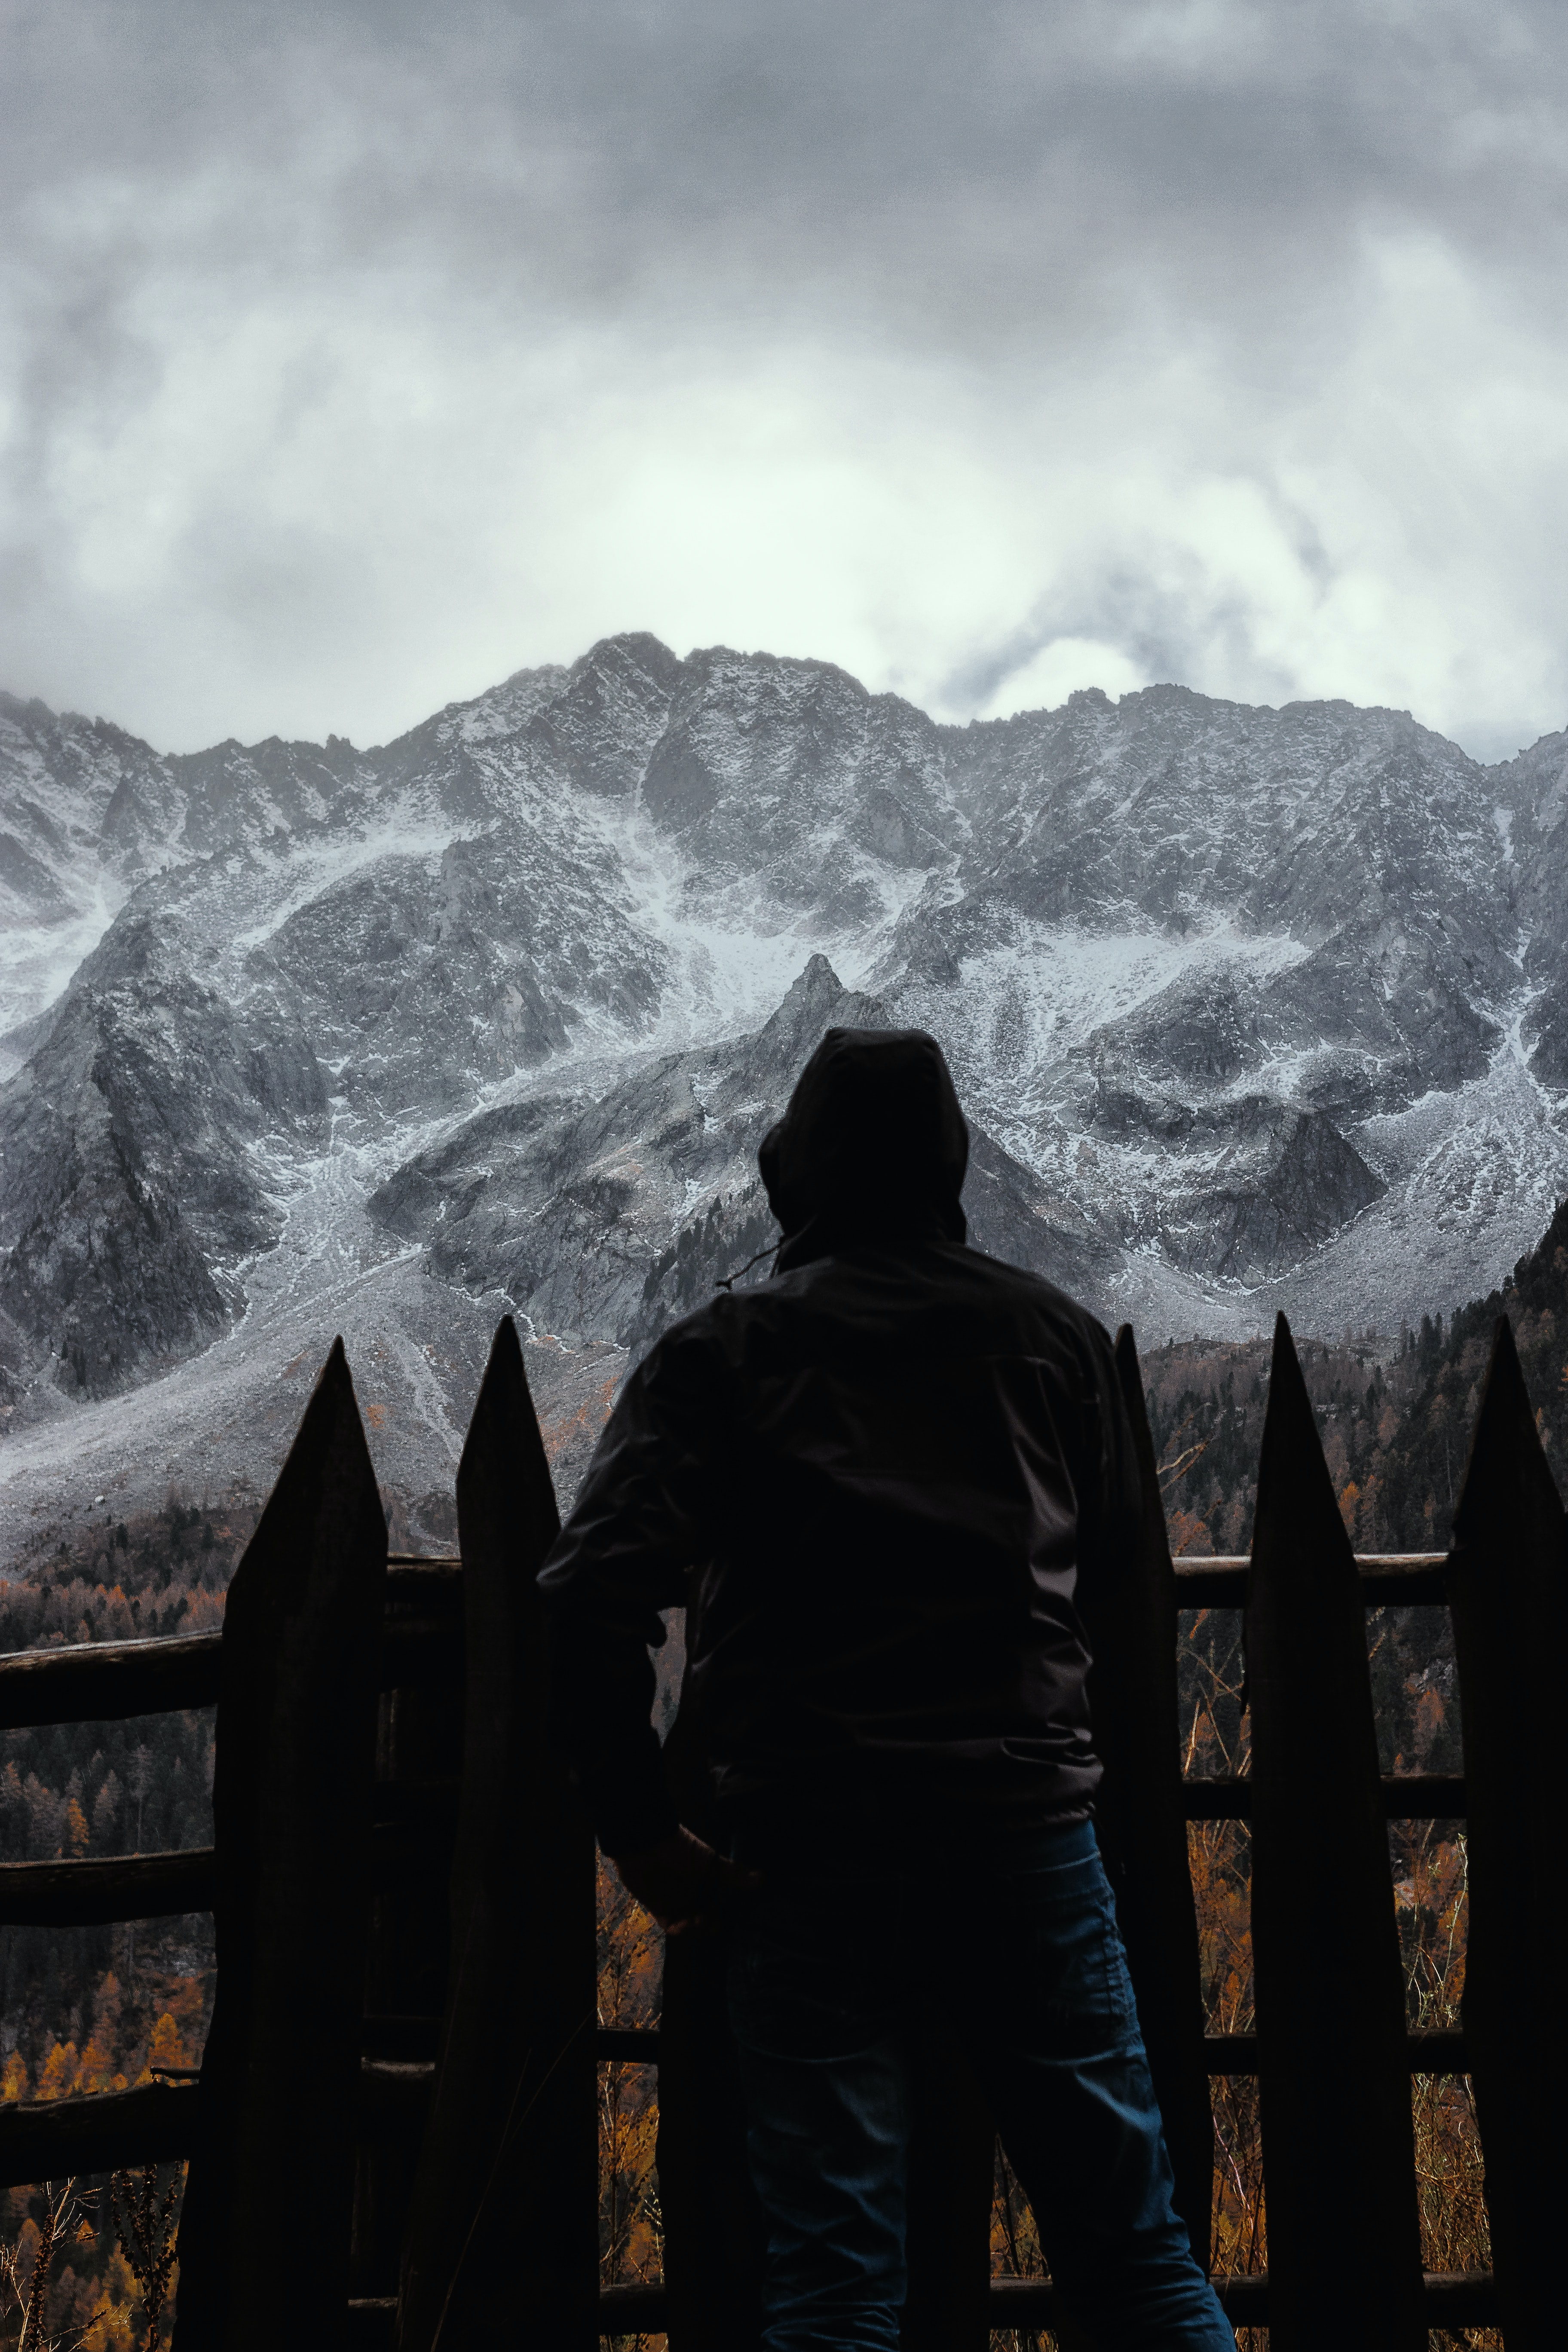 silhouette of person standing in front fence with a scene of mountains